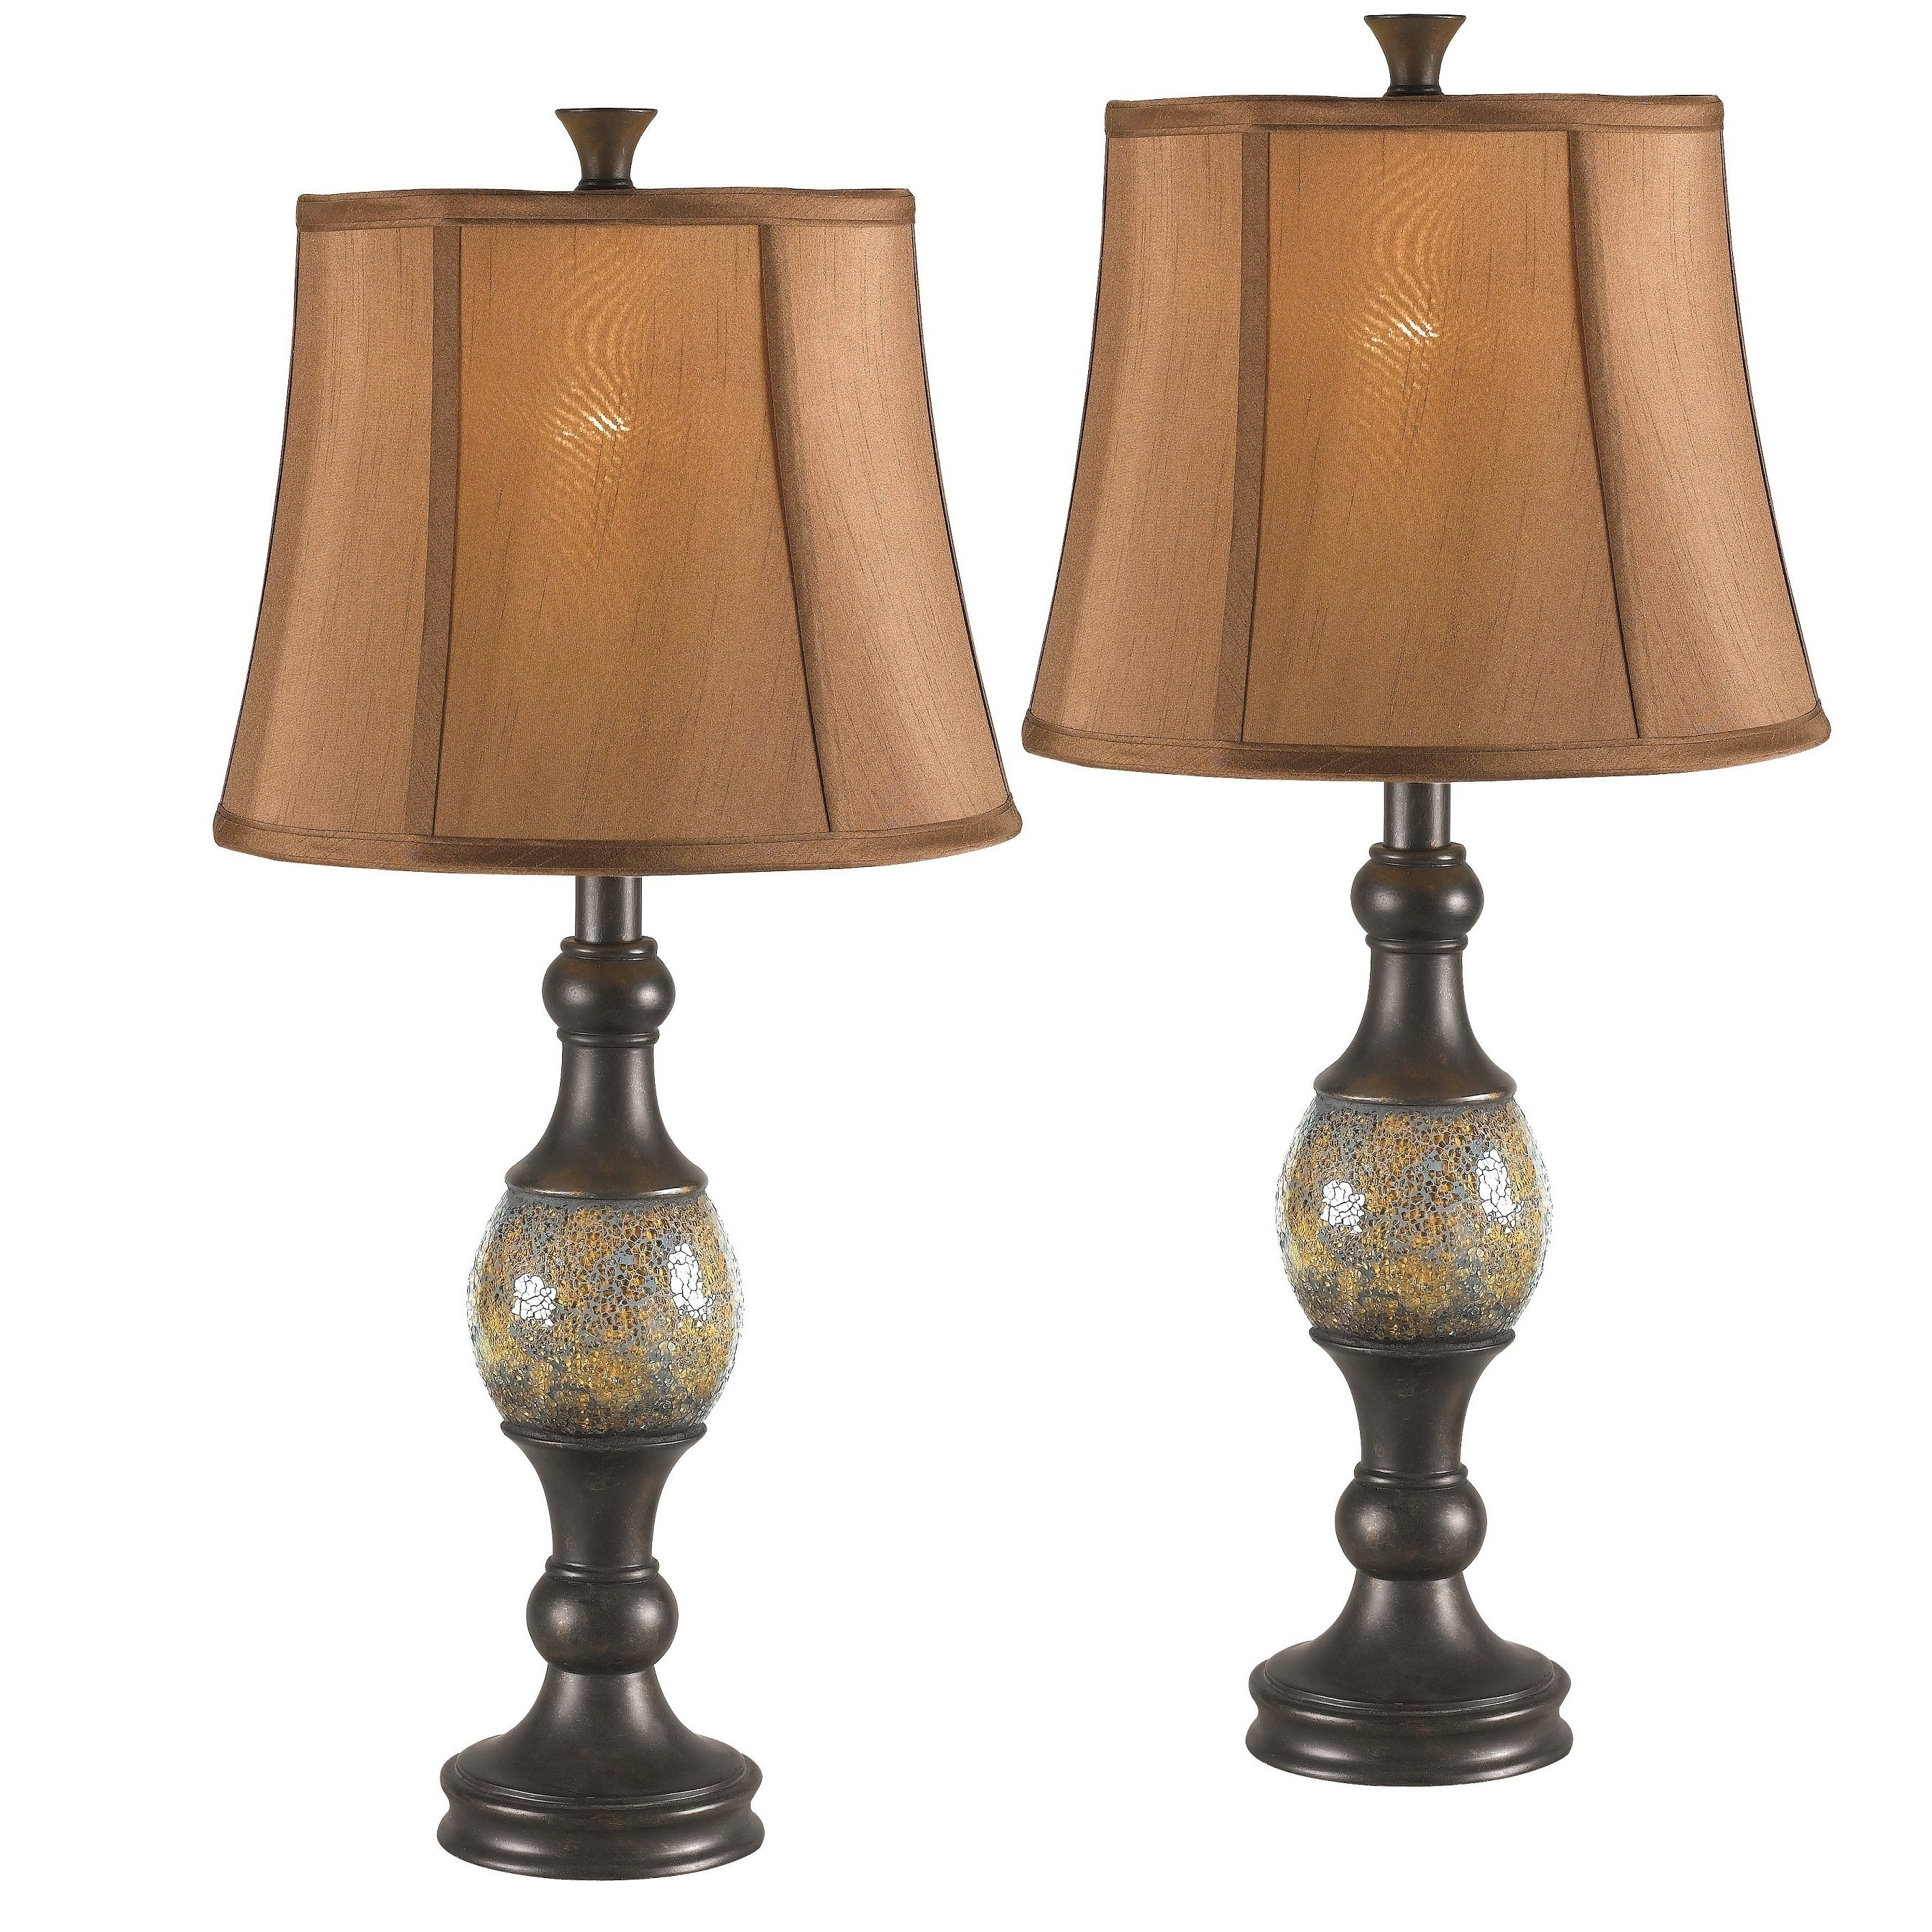 Nantes 1 Light Oil Rubbed Bronze Table Lamp (Set Of 2)   Free Shipping  Today   Overstock.com   15825545